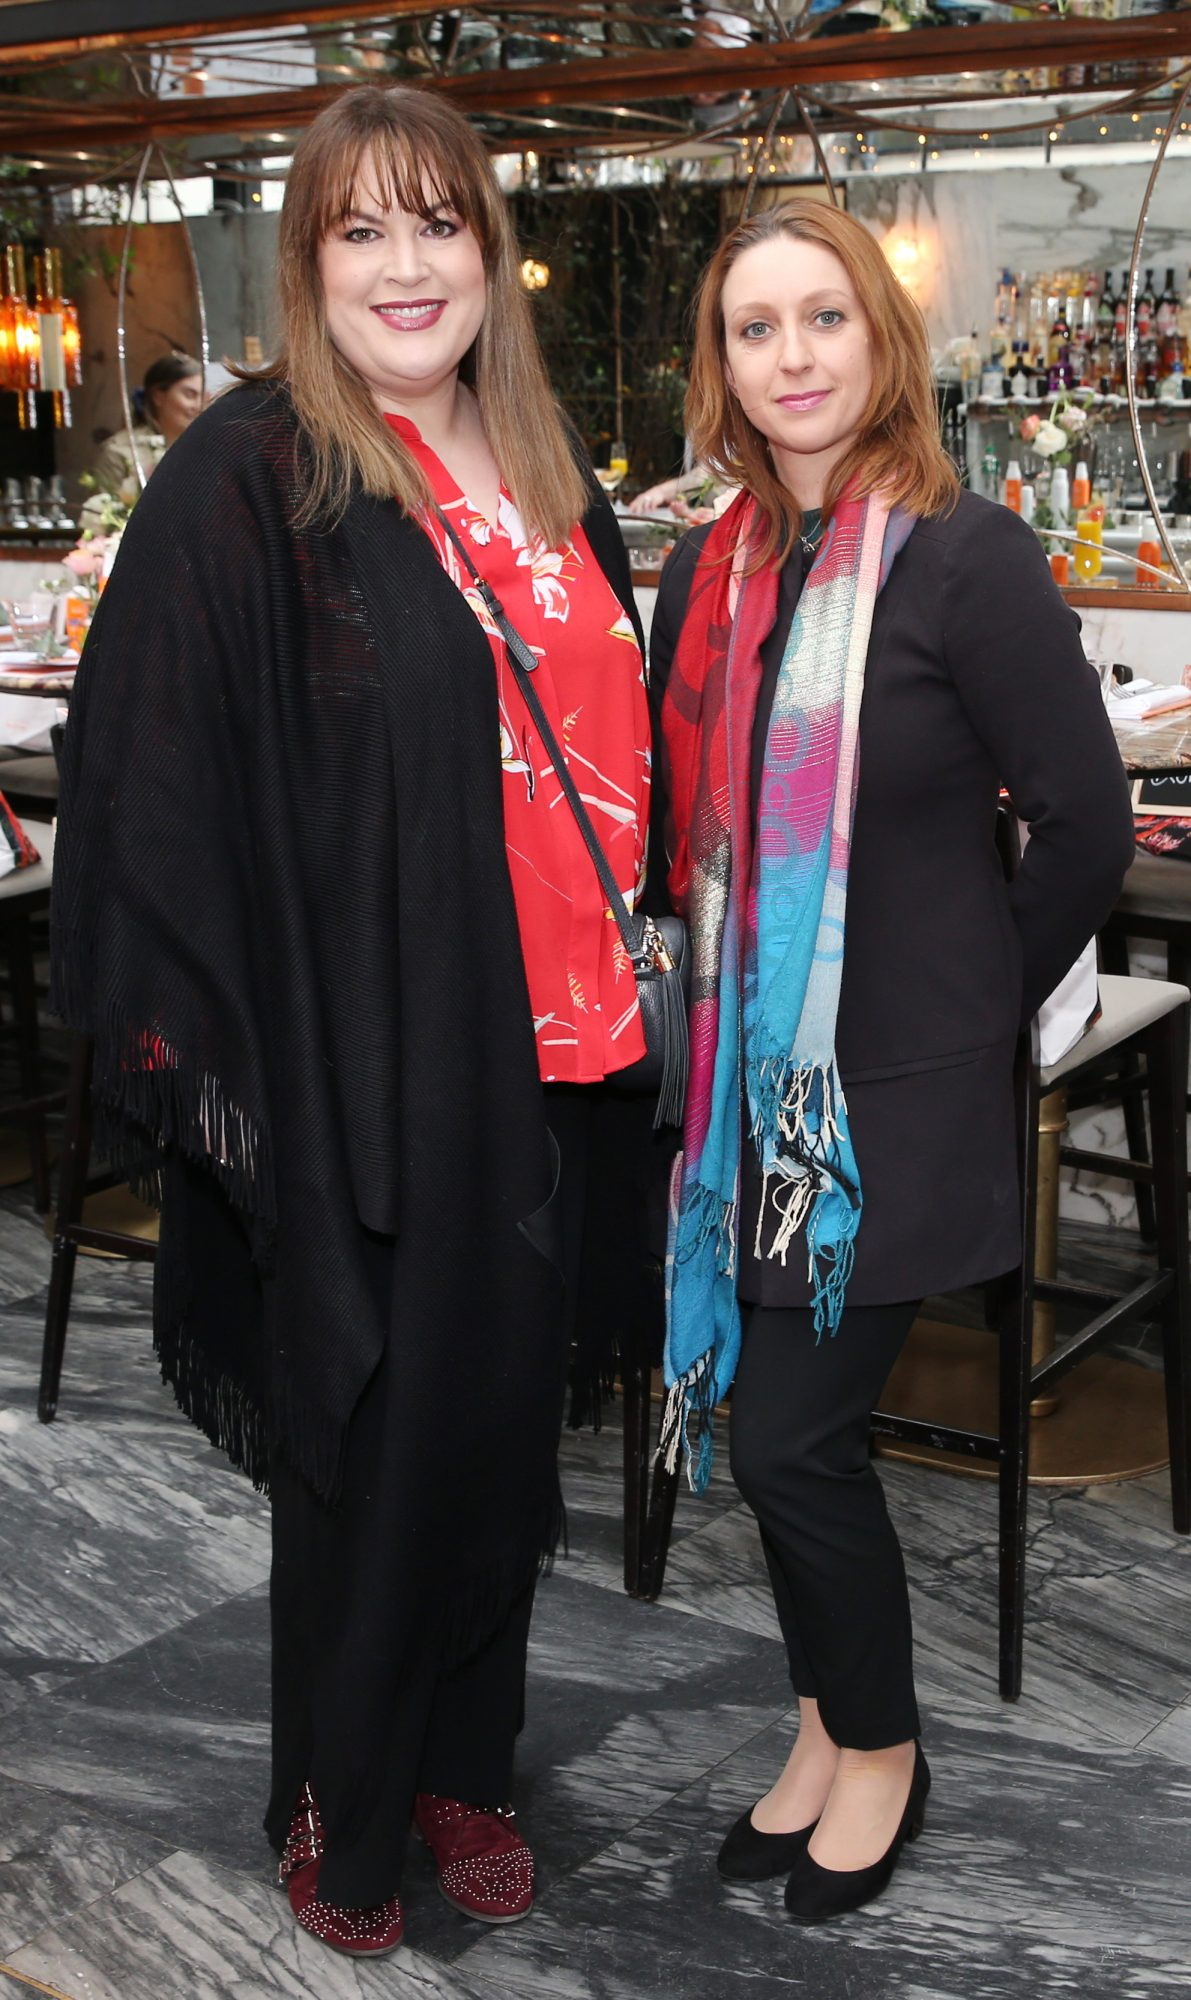 Pictured is Monica McKenna and Dora Orlowska at the launch of the new Avène Expert Suncare Range in The Grayson Dublin. The new range of suncare from the French brand is suitable for all skin types and includes a Sports Sun Cream, a City Shield BB Style High Protection Face Cream, two new SPF Body Sprays and a new Very High Protection Children's SPF. For more information visit www.avene.ie. Photo: Leon Farrell/Photocall Ireland.